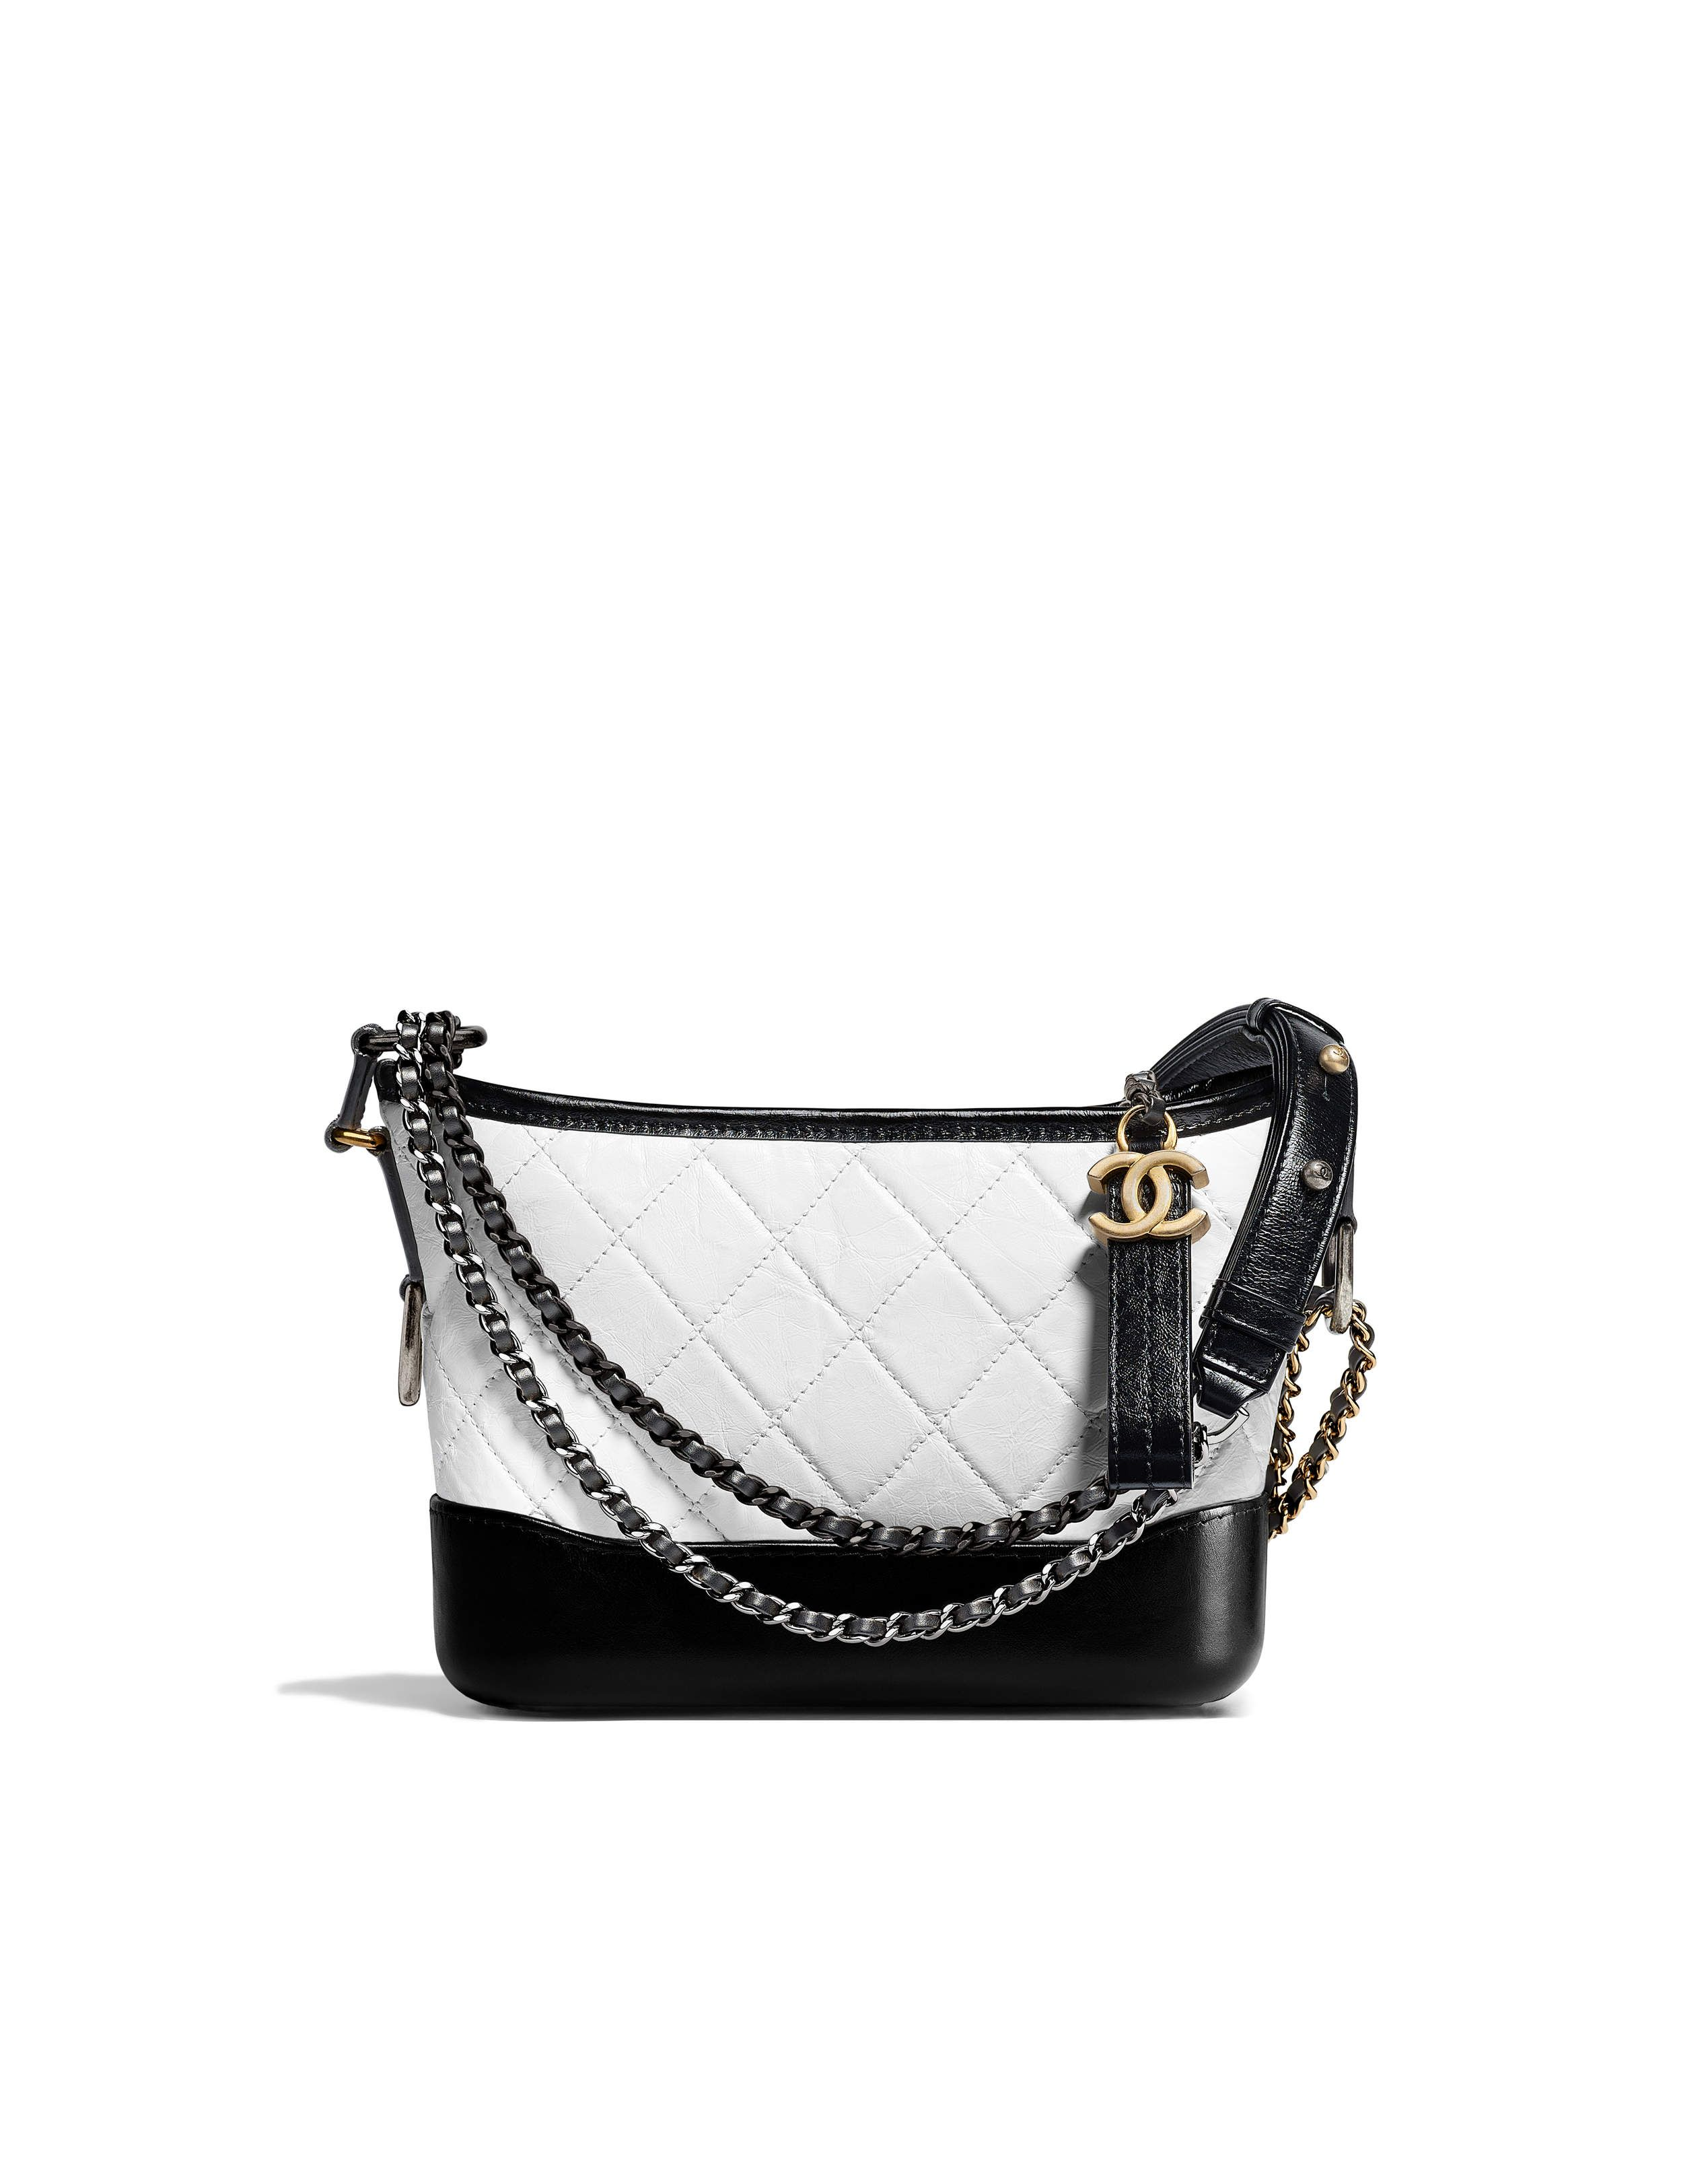 1b799ade539e Chanel - FW 2017/2018 | White & black aged calfskin Chanel's Gabrielle  small Hobo bag